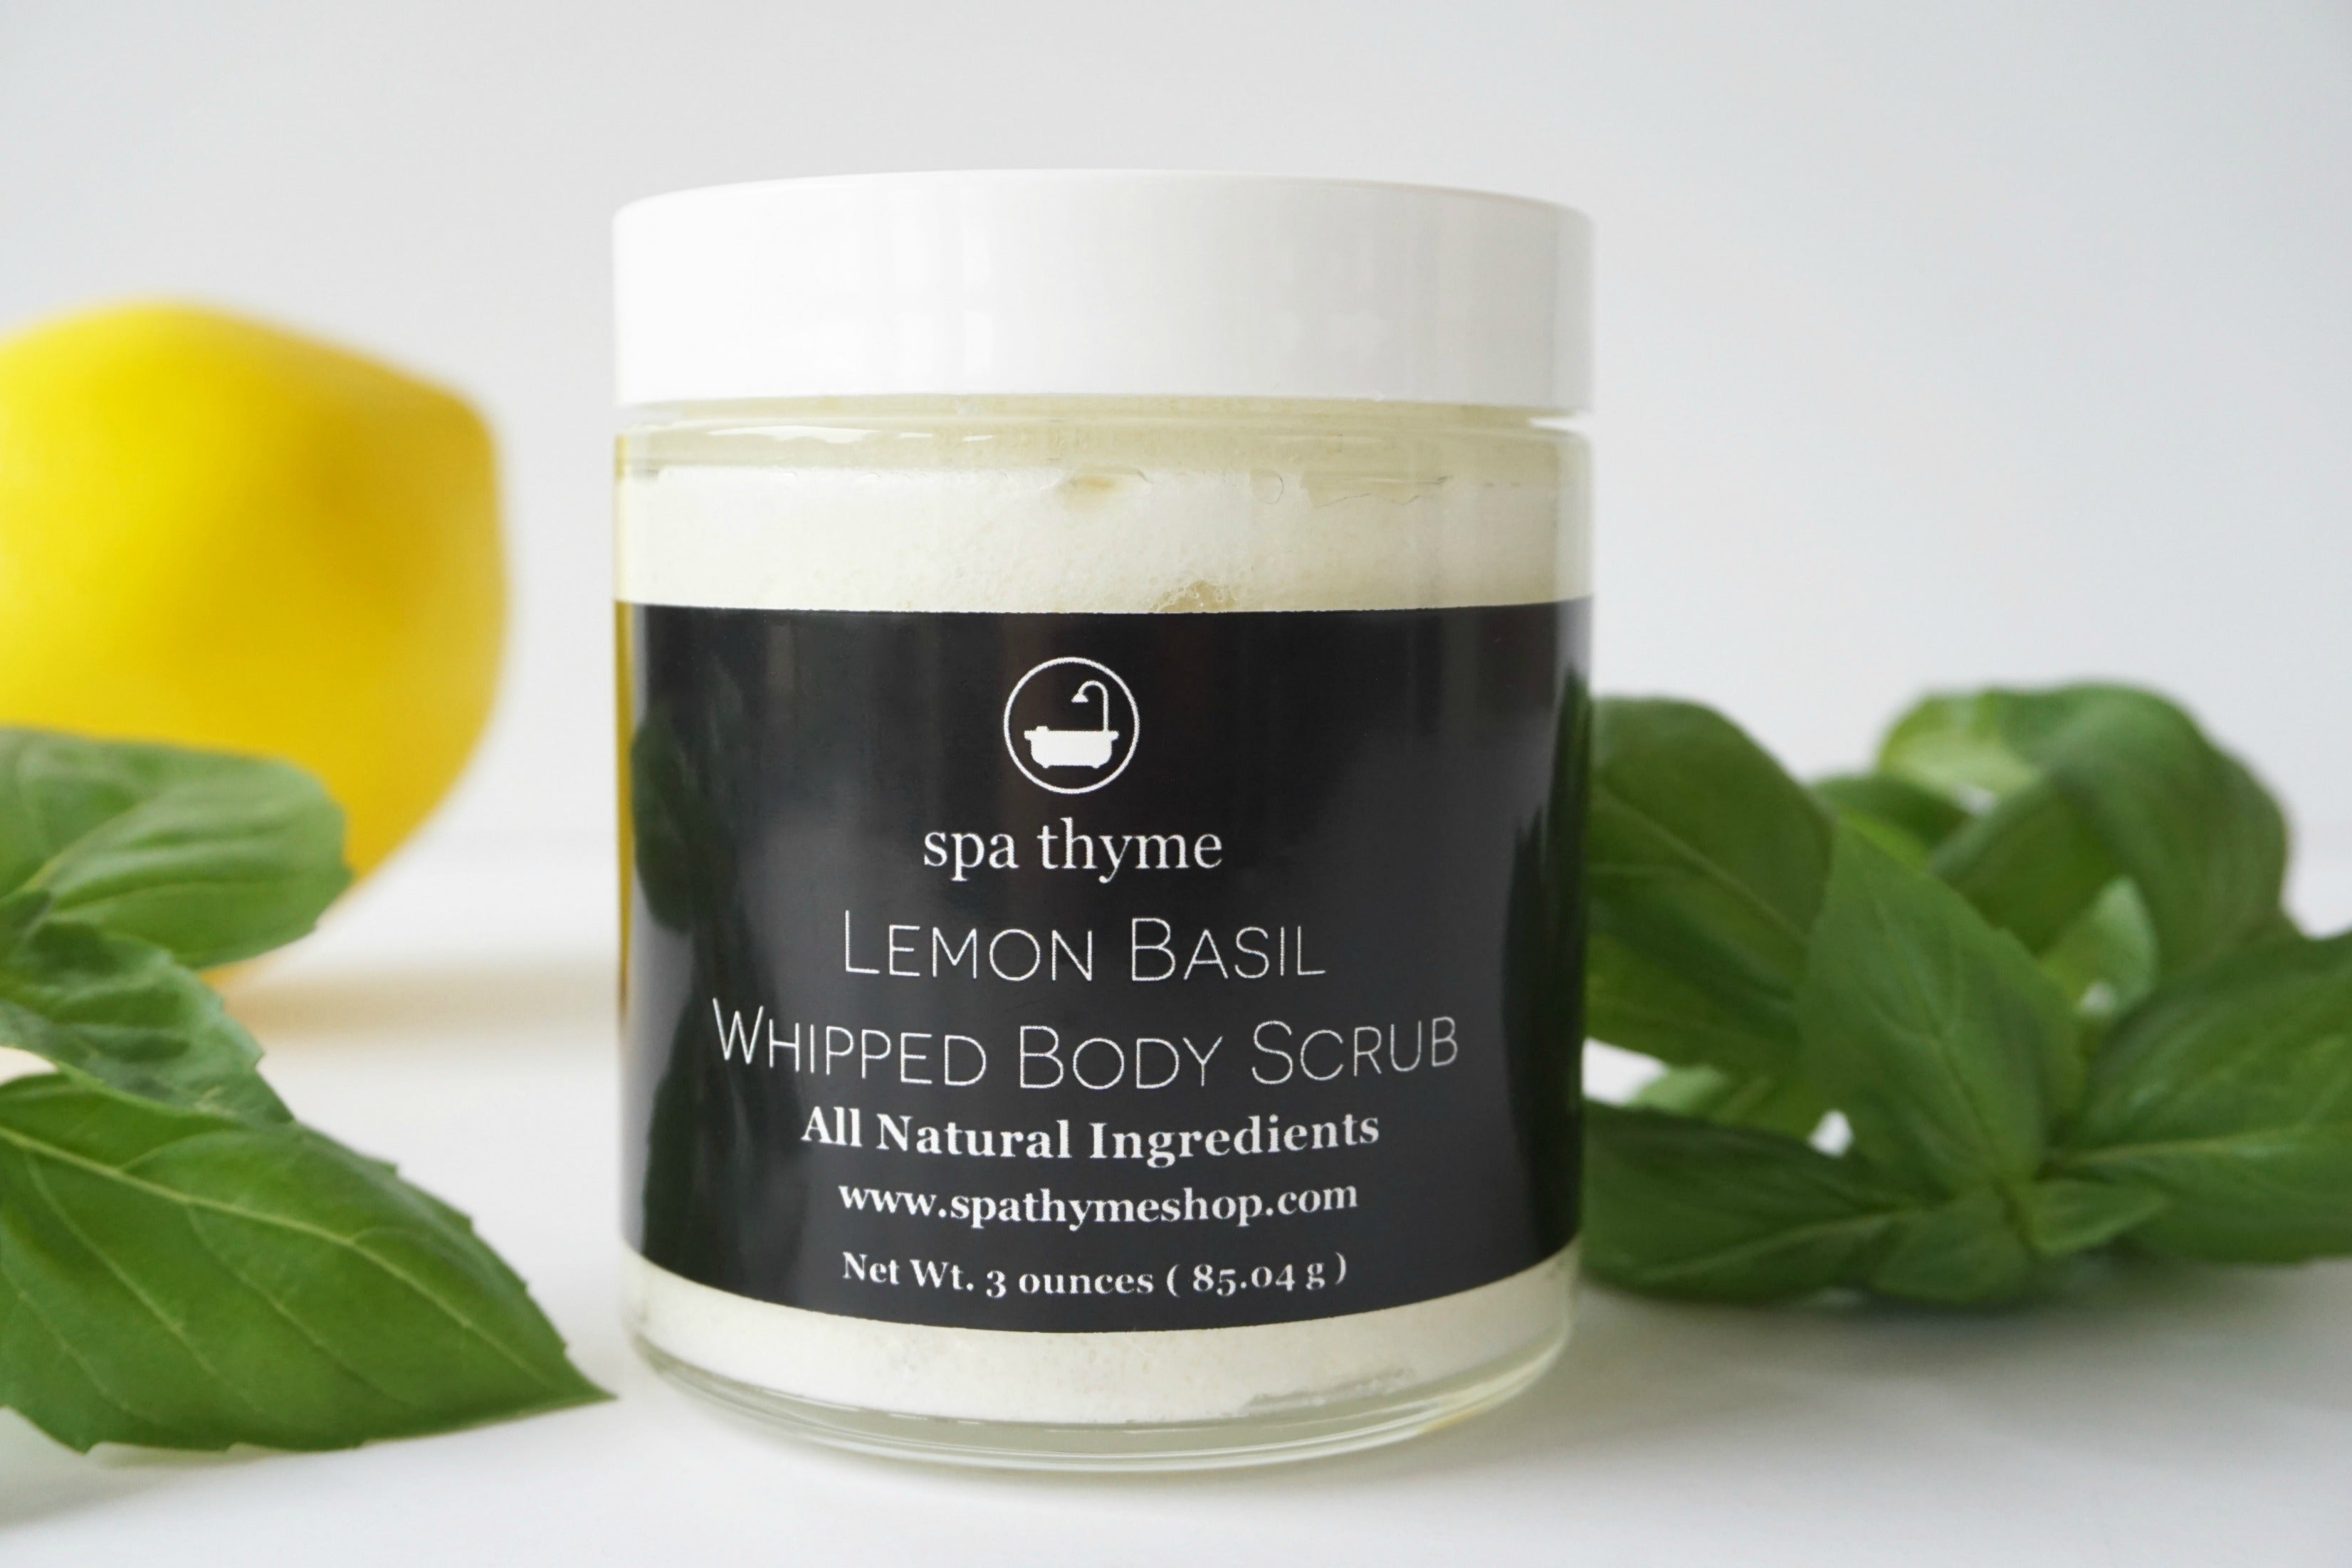 lemon basil body scrub - whipped body scrub - citrus body scrub - uplifting body scrub - earthy gifts